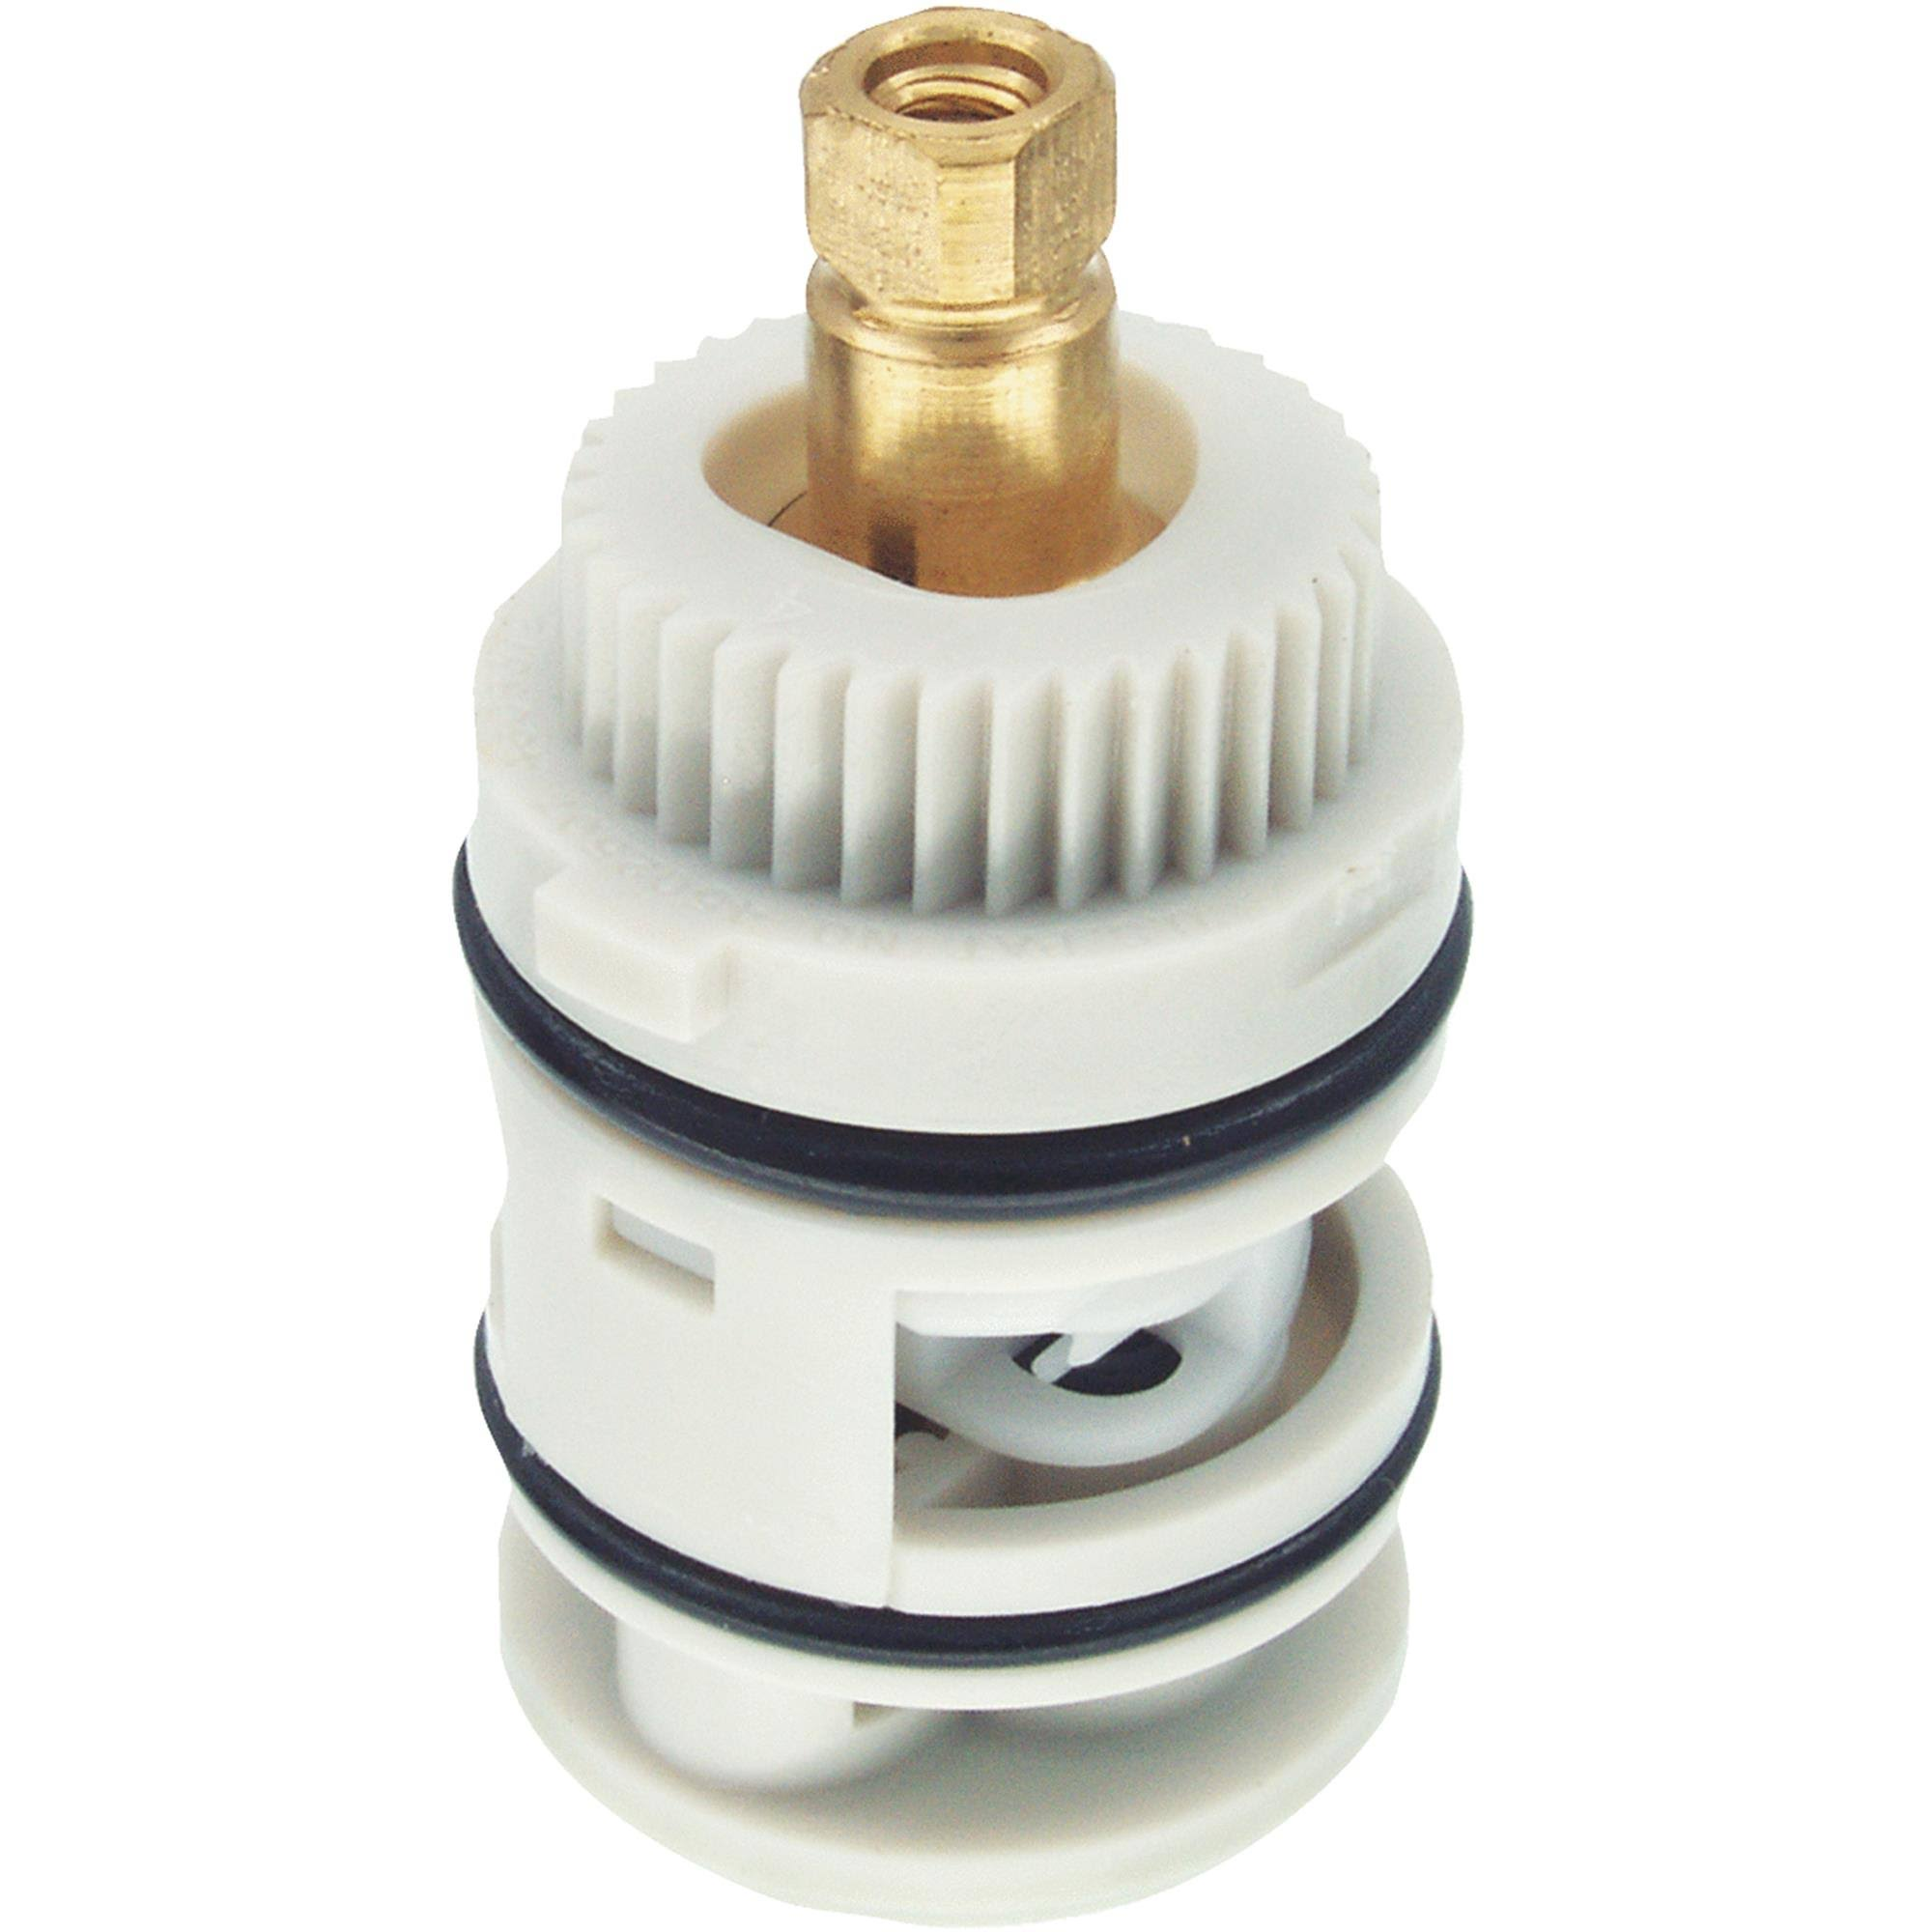 Danco Valley Replacement Faucet Cartridge